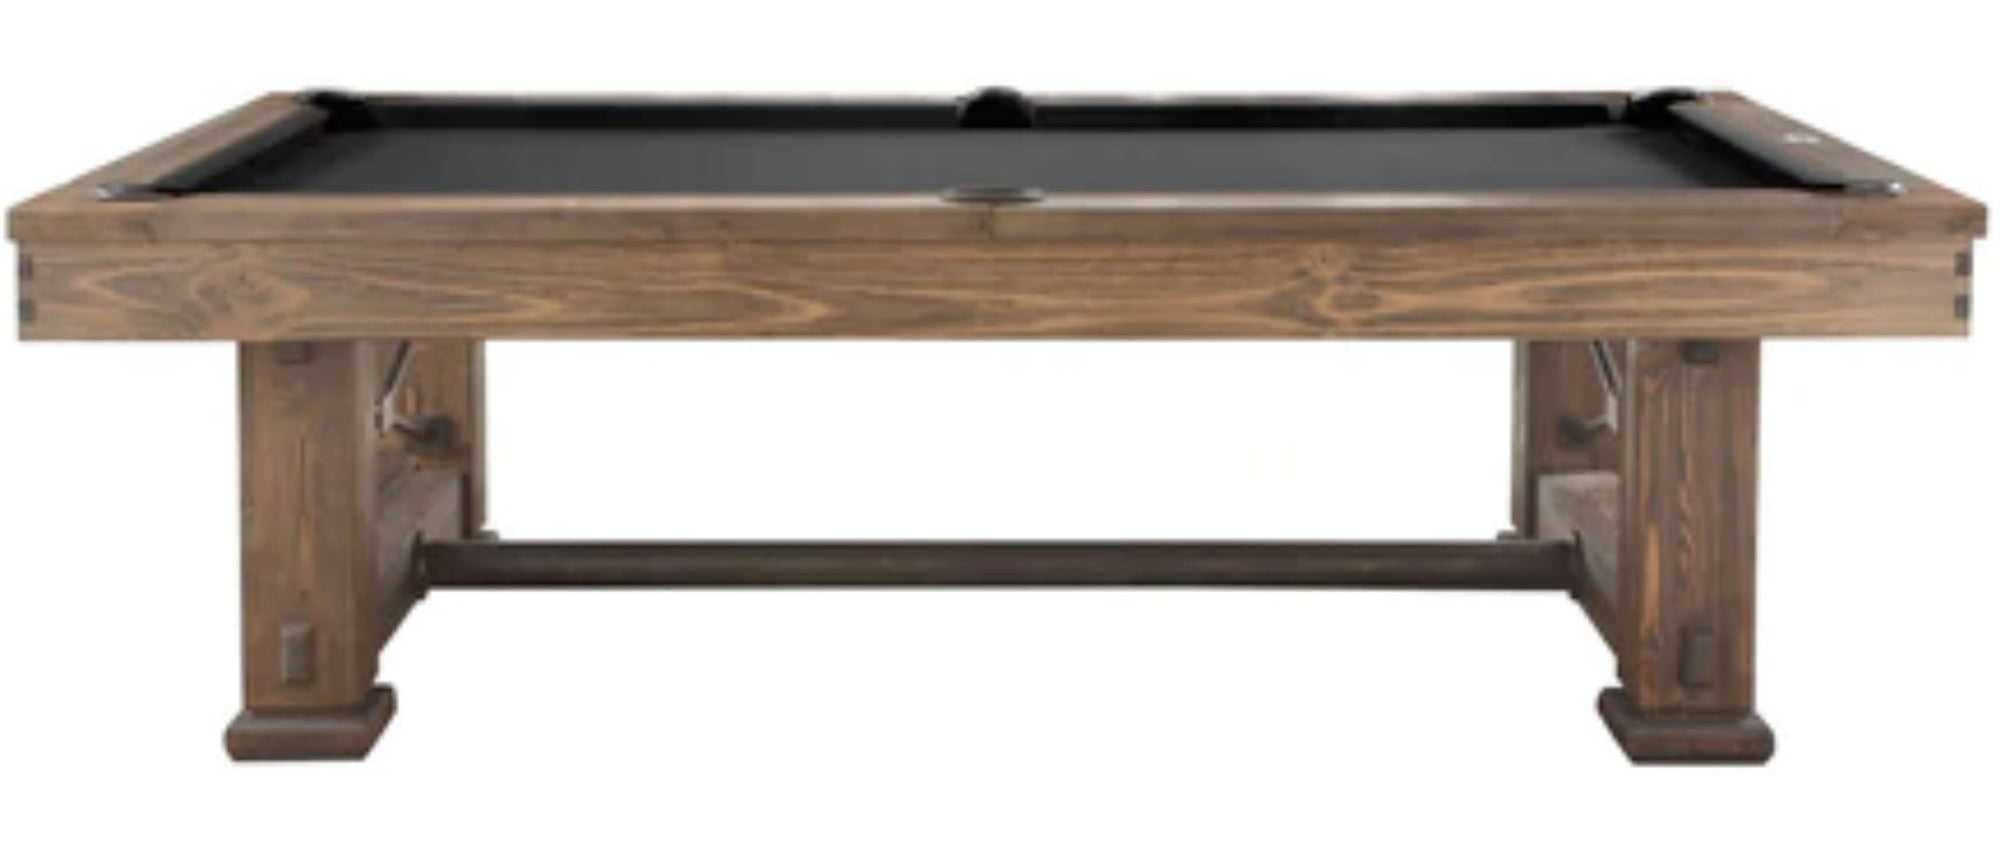 Rio Grande Slate Pool Table, Weathered Bark